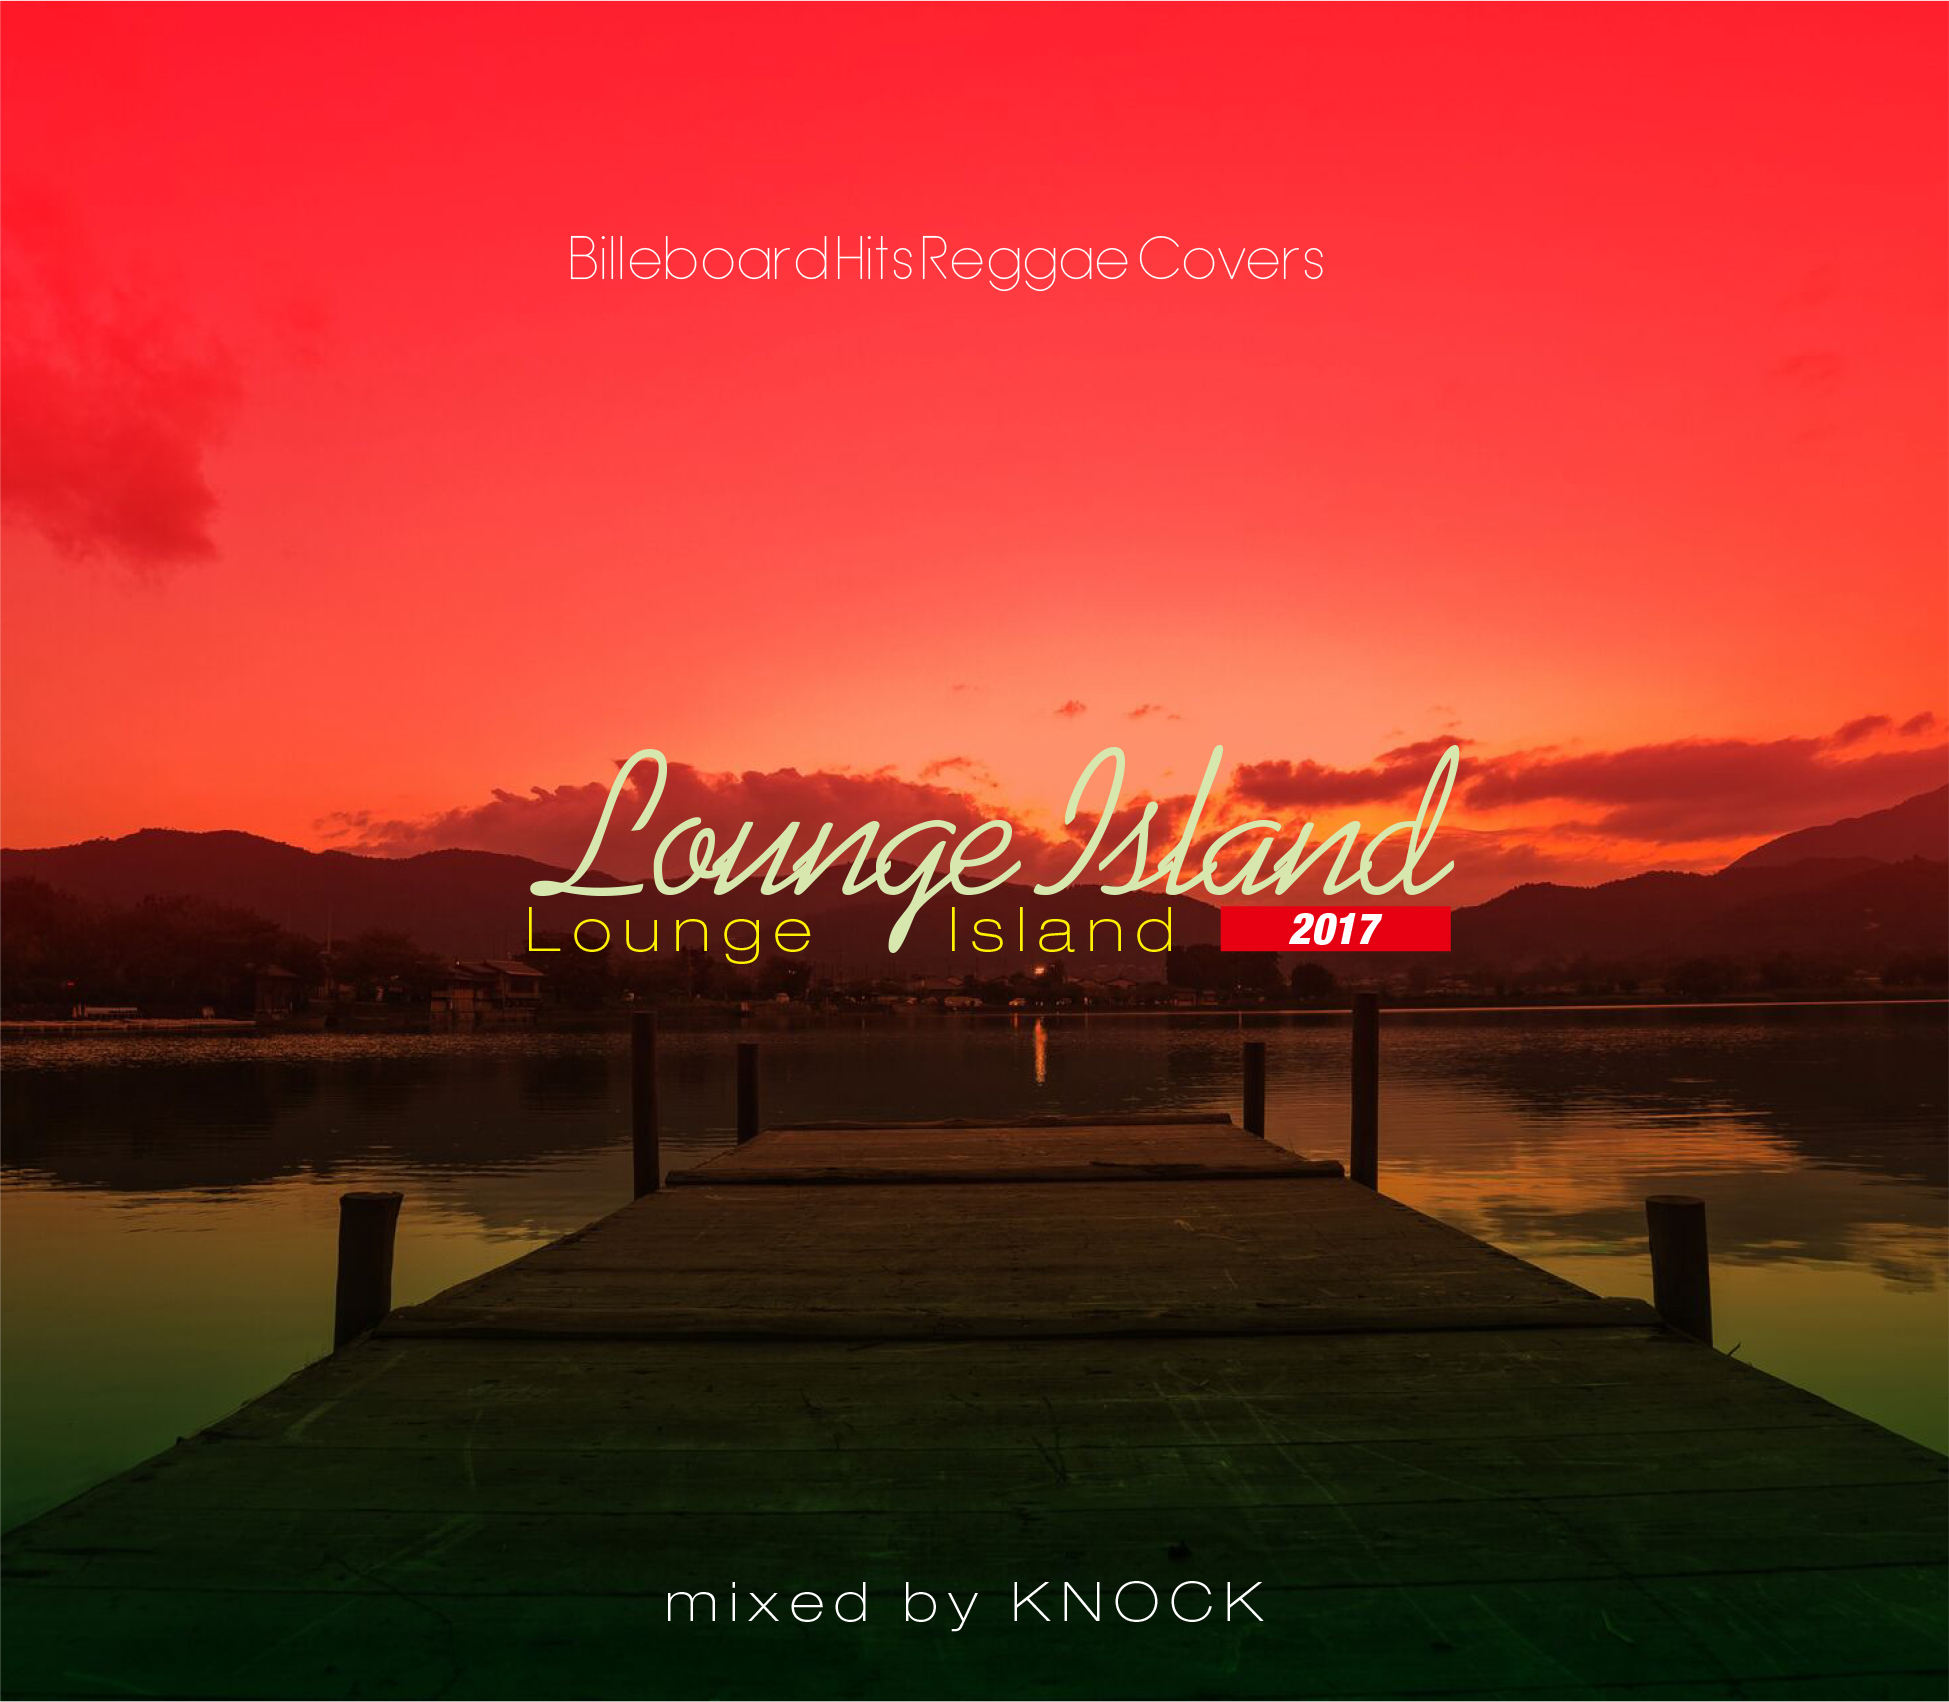 【1枚組】 Lounge Island 2017 / DJ KNOCK 【[国内盤MIX CD】